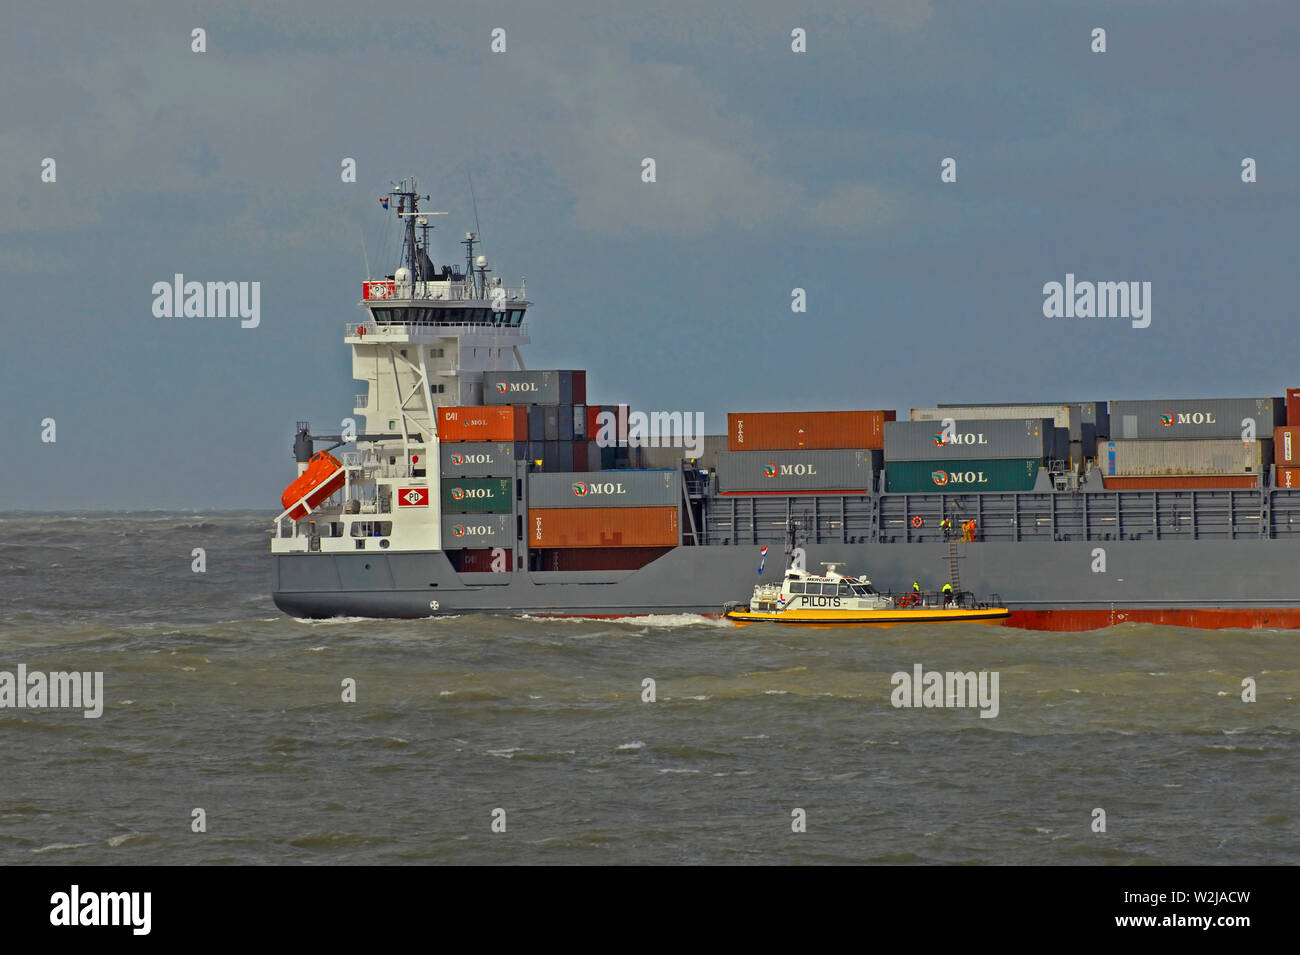 port of rotterdam, zuid holland/netherlands - march 21, 2007: the pilot boarding the inbound containership  annabella (imo 9354363) from pilot launch - Stock Image